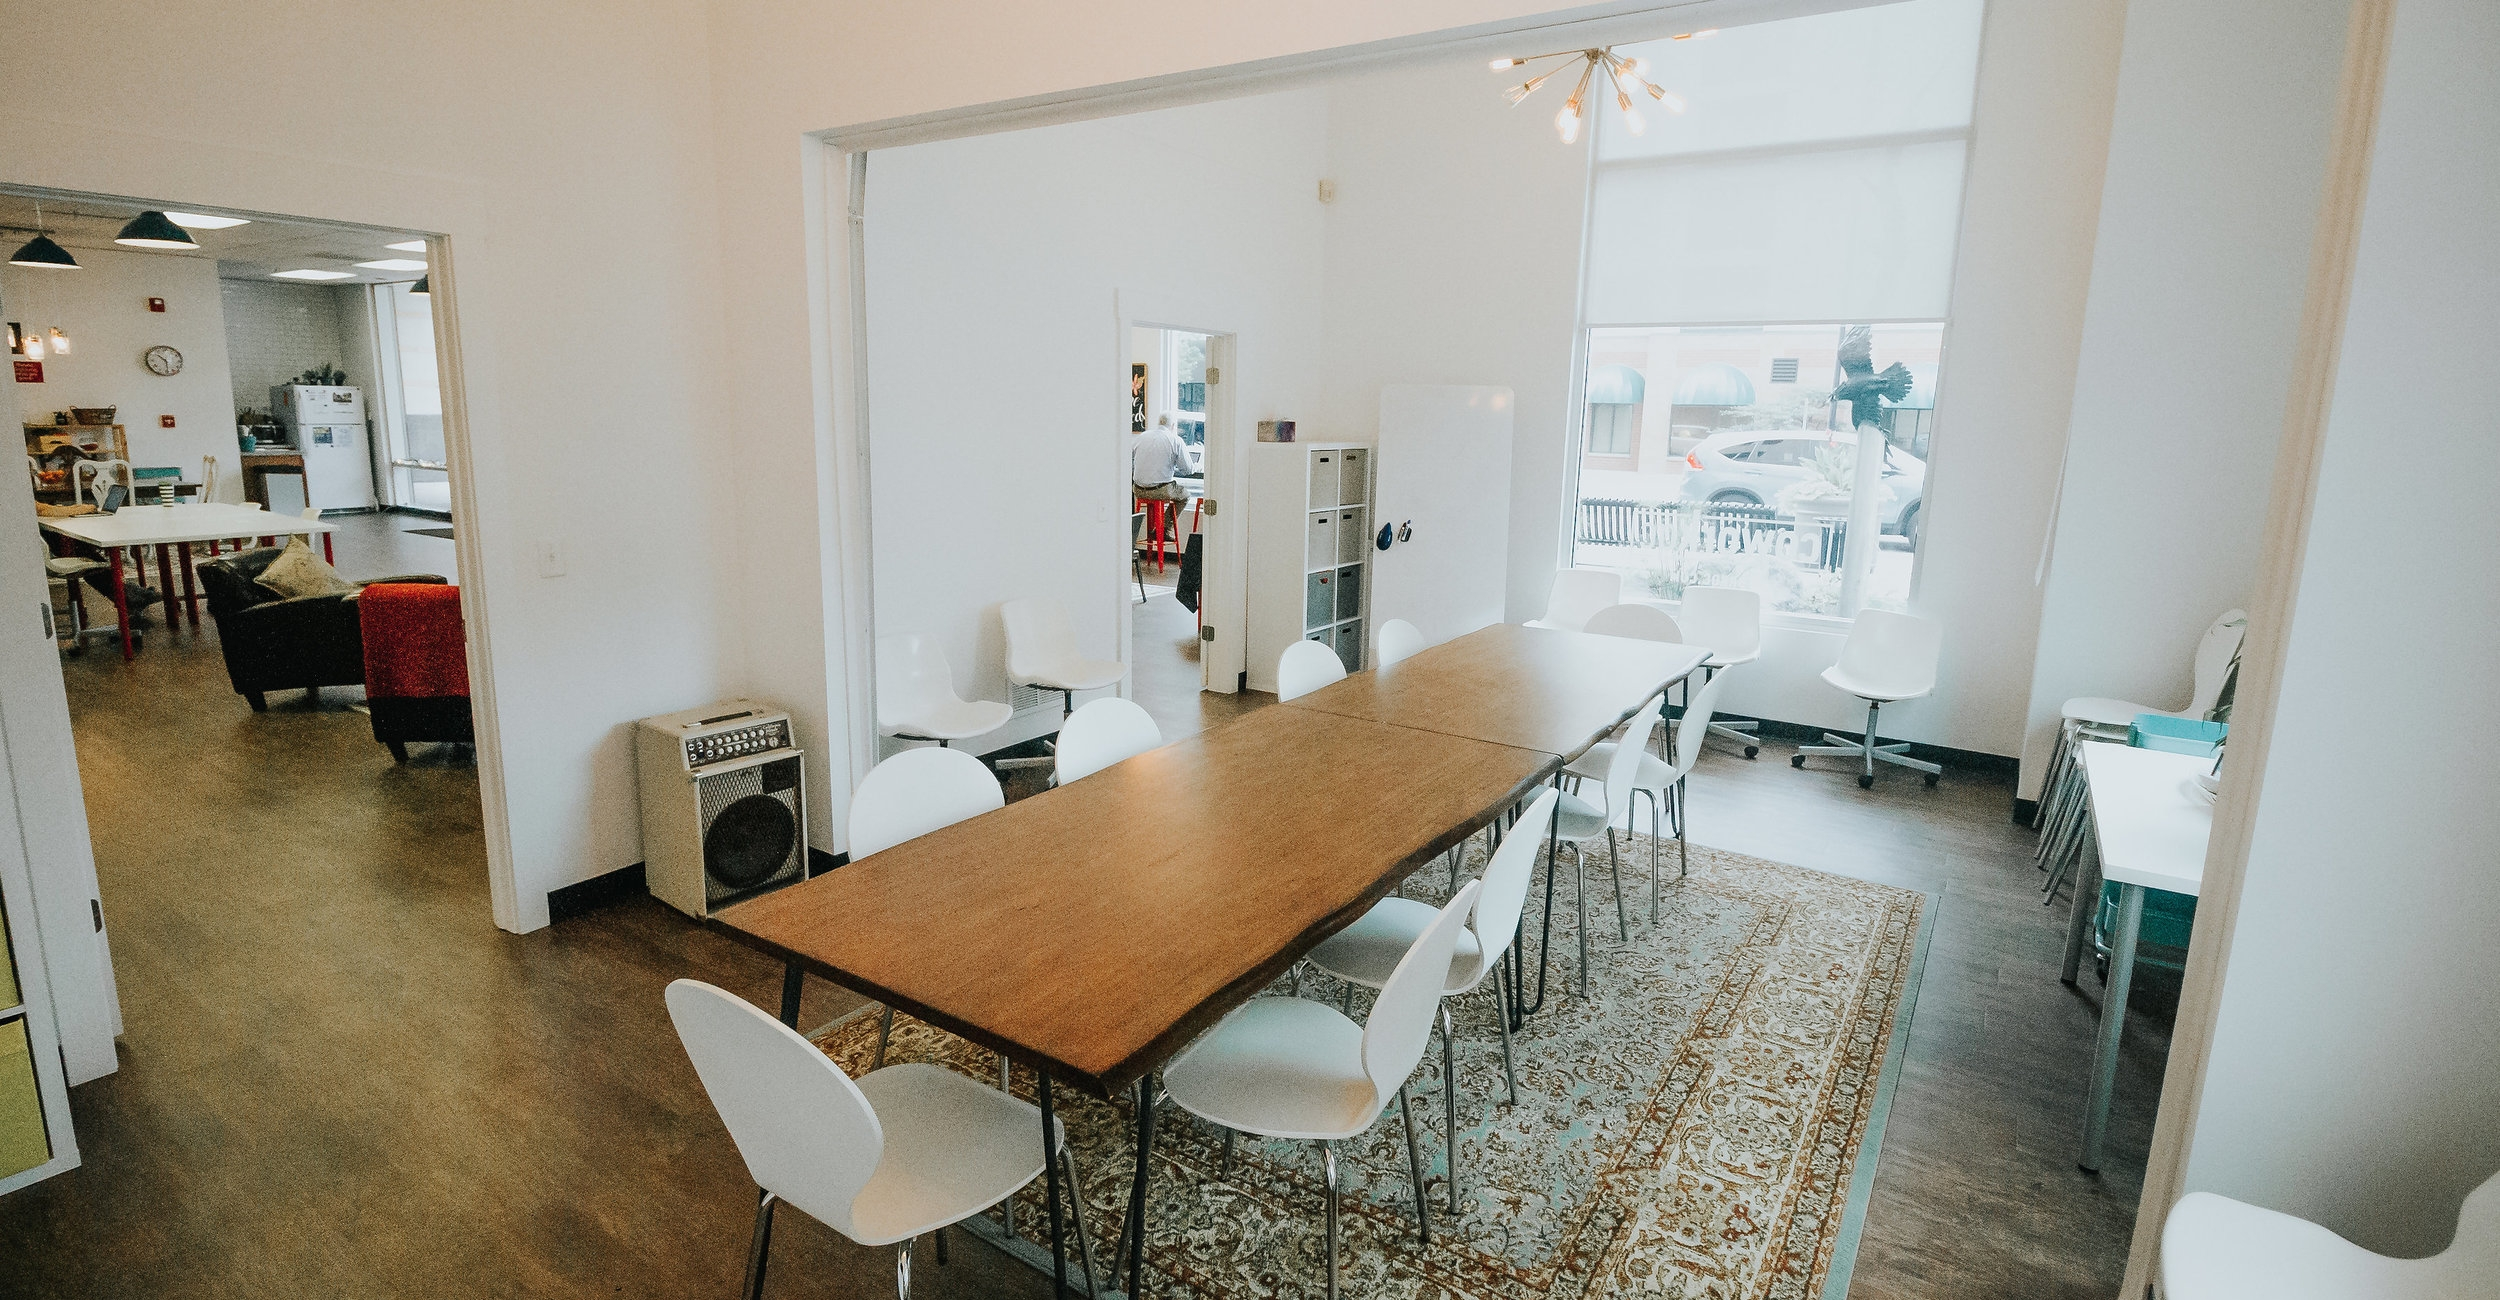 MEETING SPACE - Professional conference rooms available for rent by the hour and included in full-time memberships.Check it out and book online